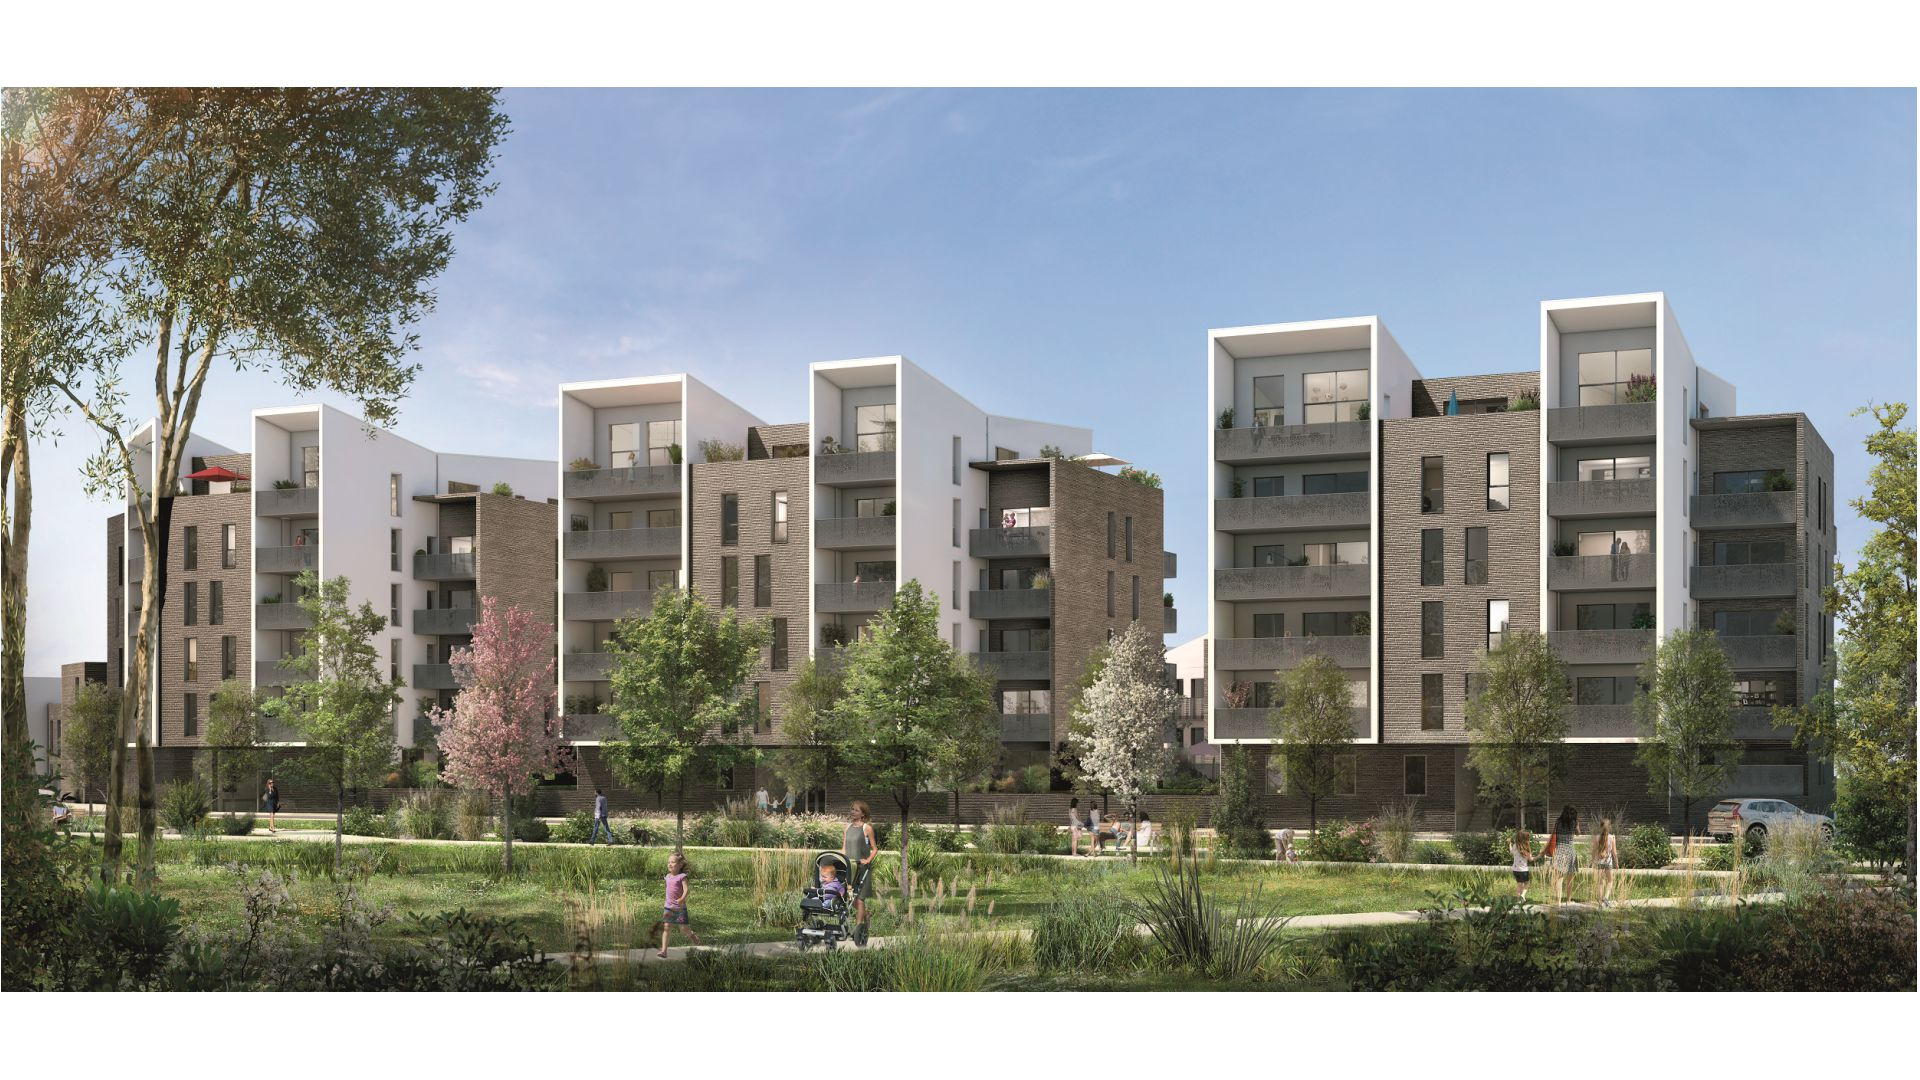 GreenCity immobilier - Blagnac-Beauzelle - 31700 - LB47 - appartements et villas - T2 - T3 - T4 -T5